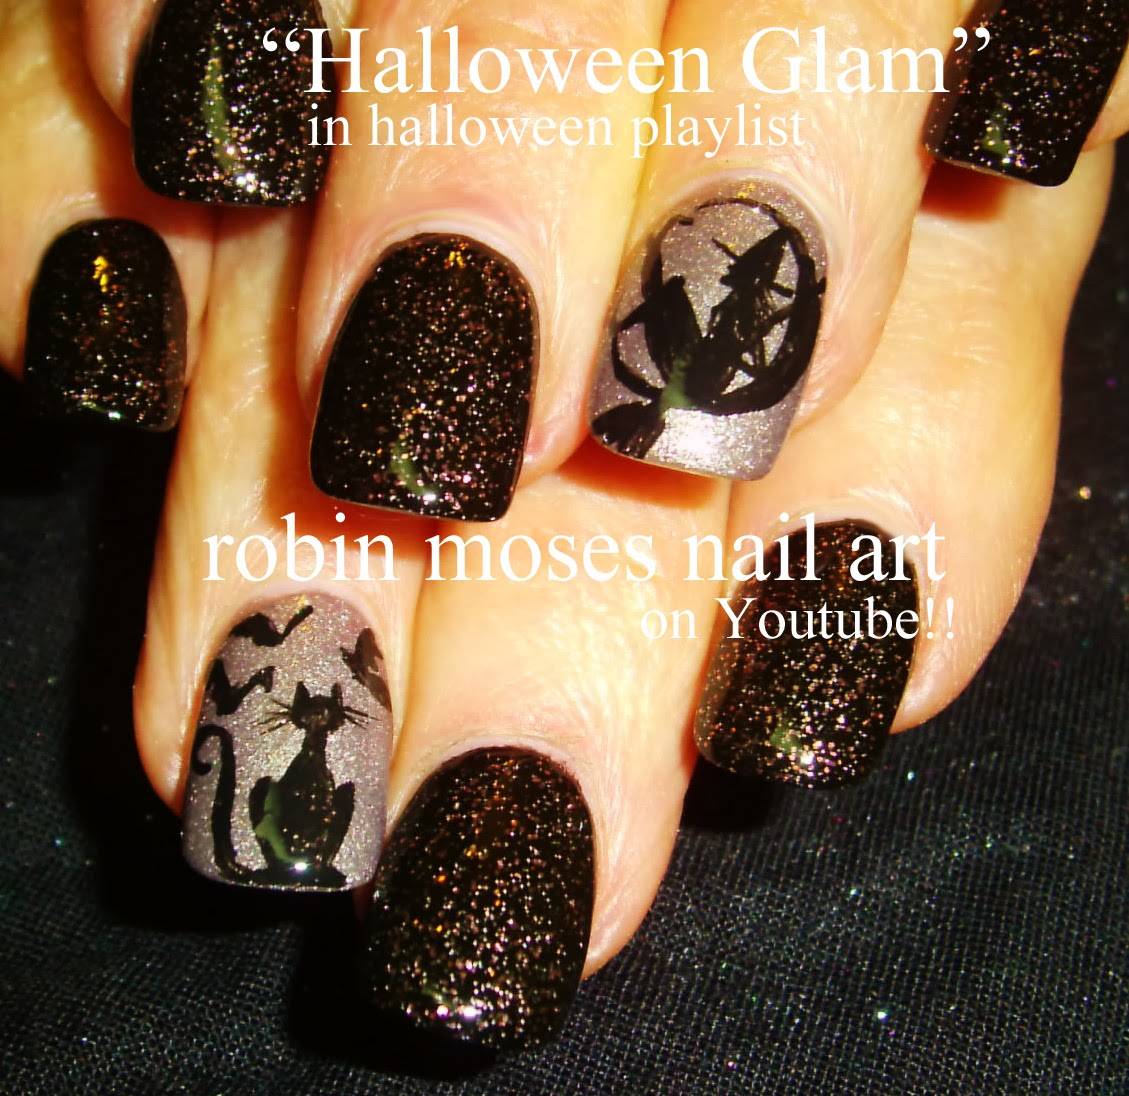 Nail art by robin moses halloween nails witch nails ghost halloween glam witch cat nail art solutioingenieria Image collections